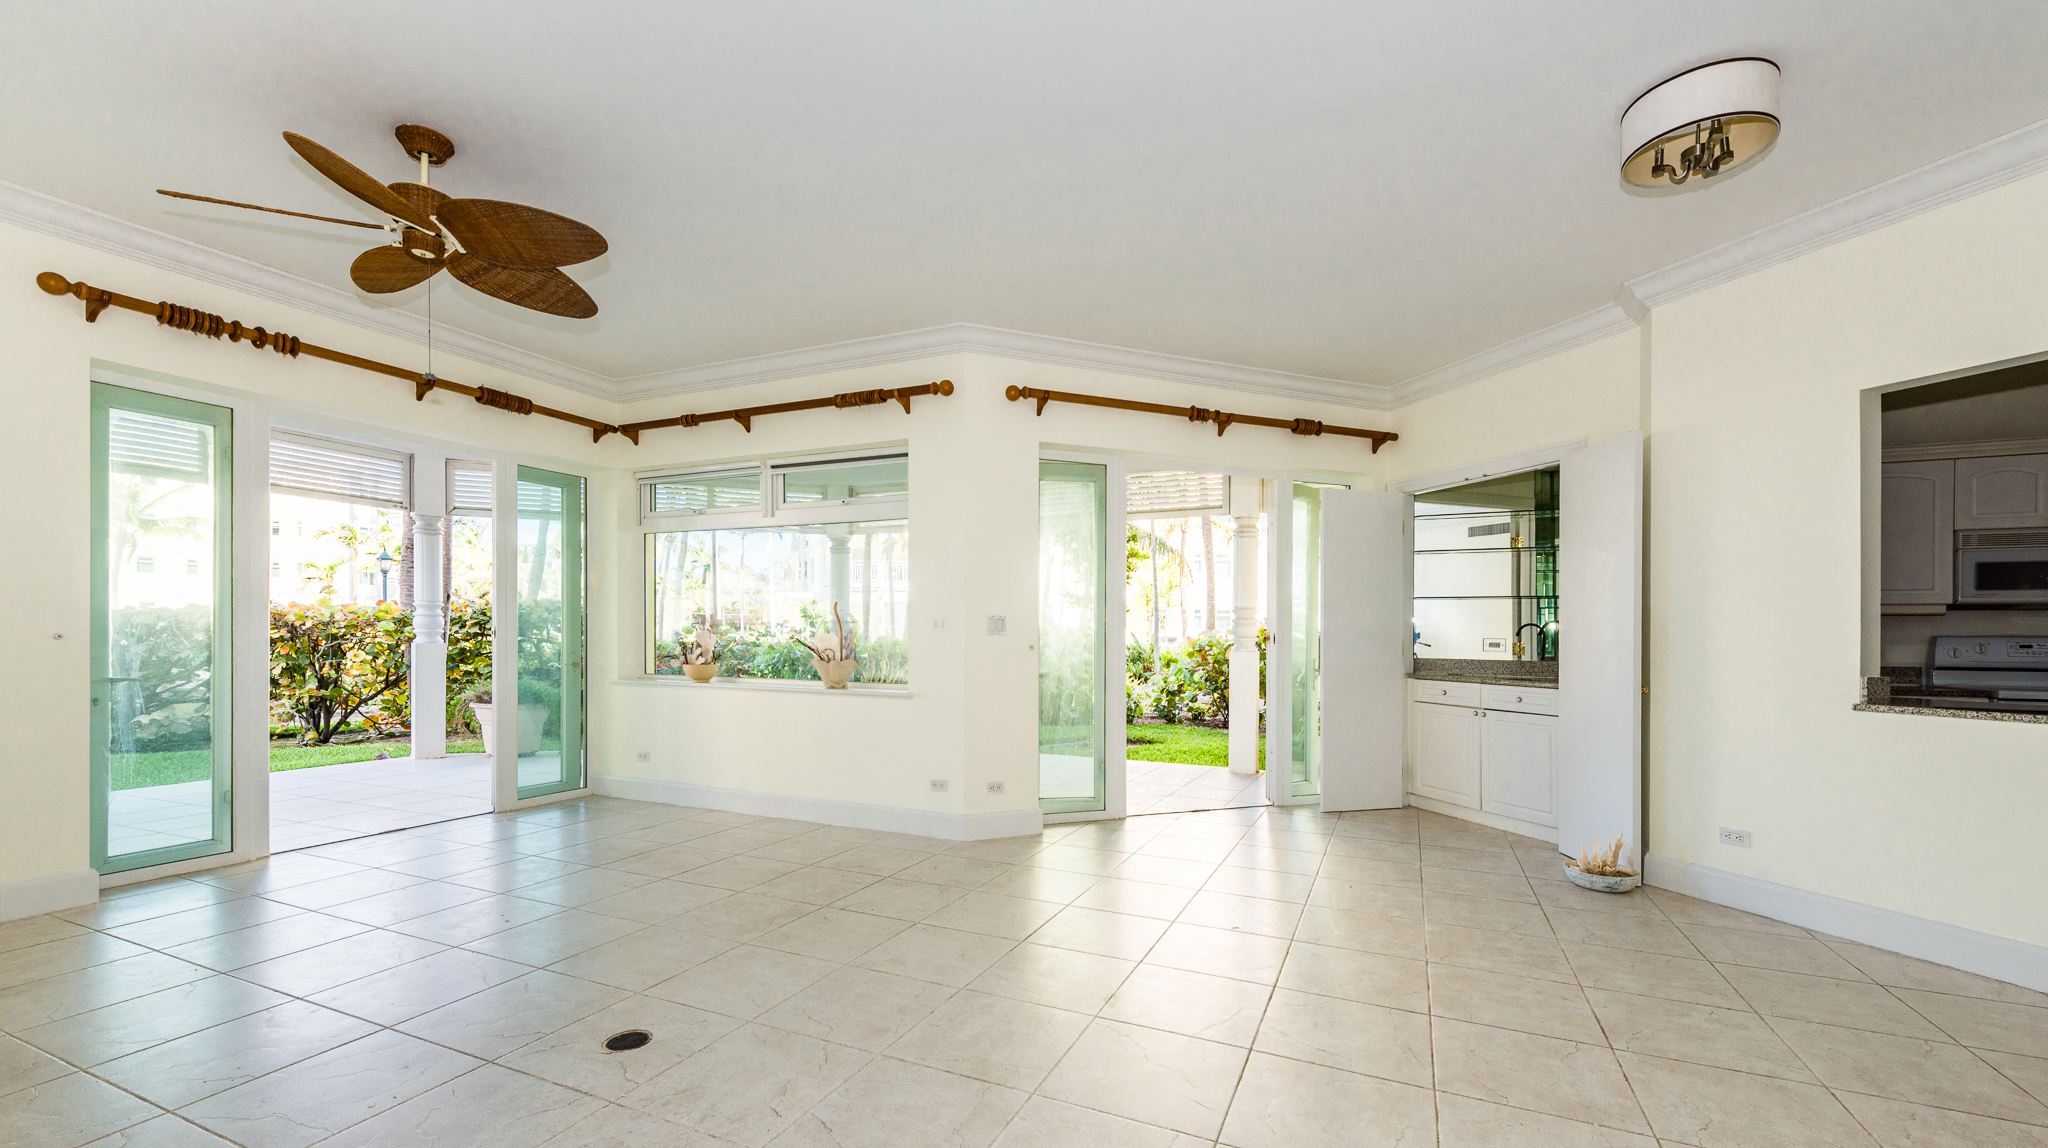 Single Family Home for Sale at Bayroc Beachfront Residences Bayroc, Cable Beach, Nassau And Paradise Island Bahamas